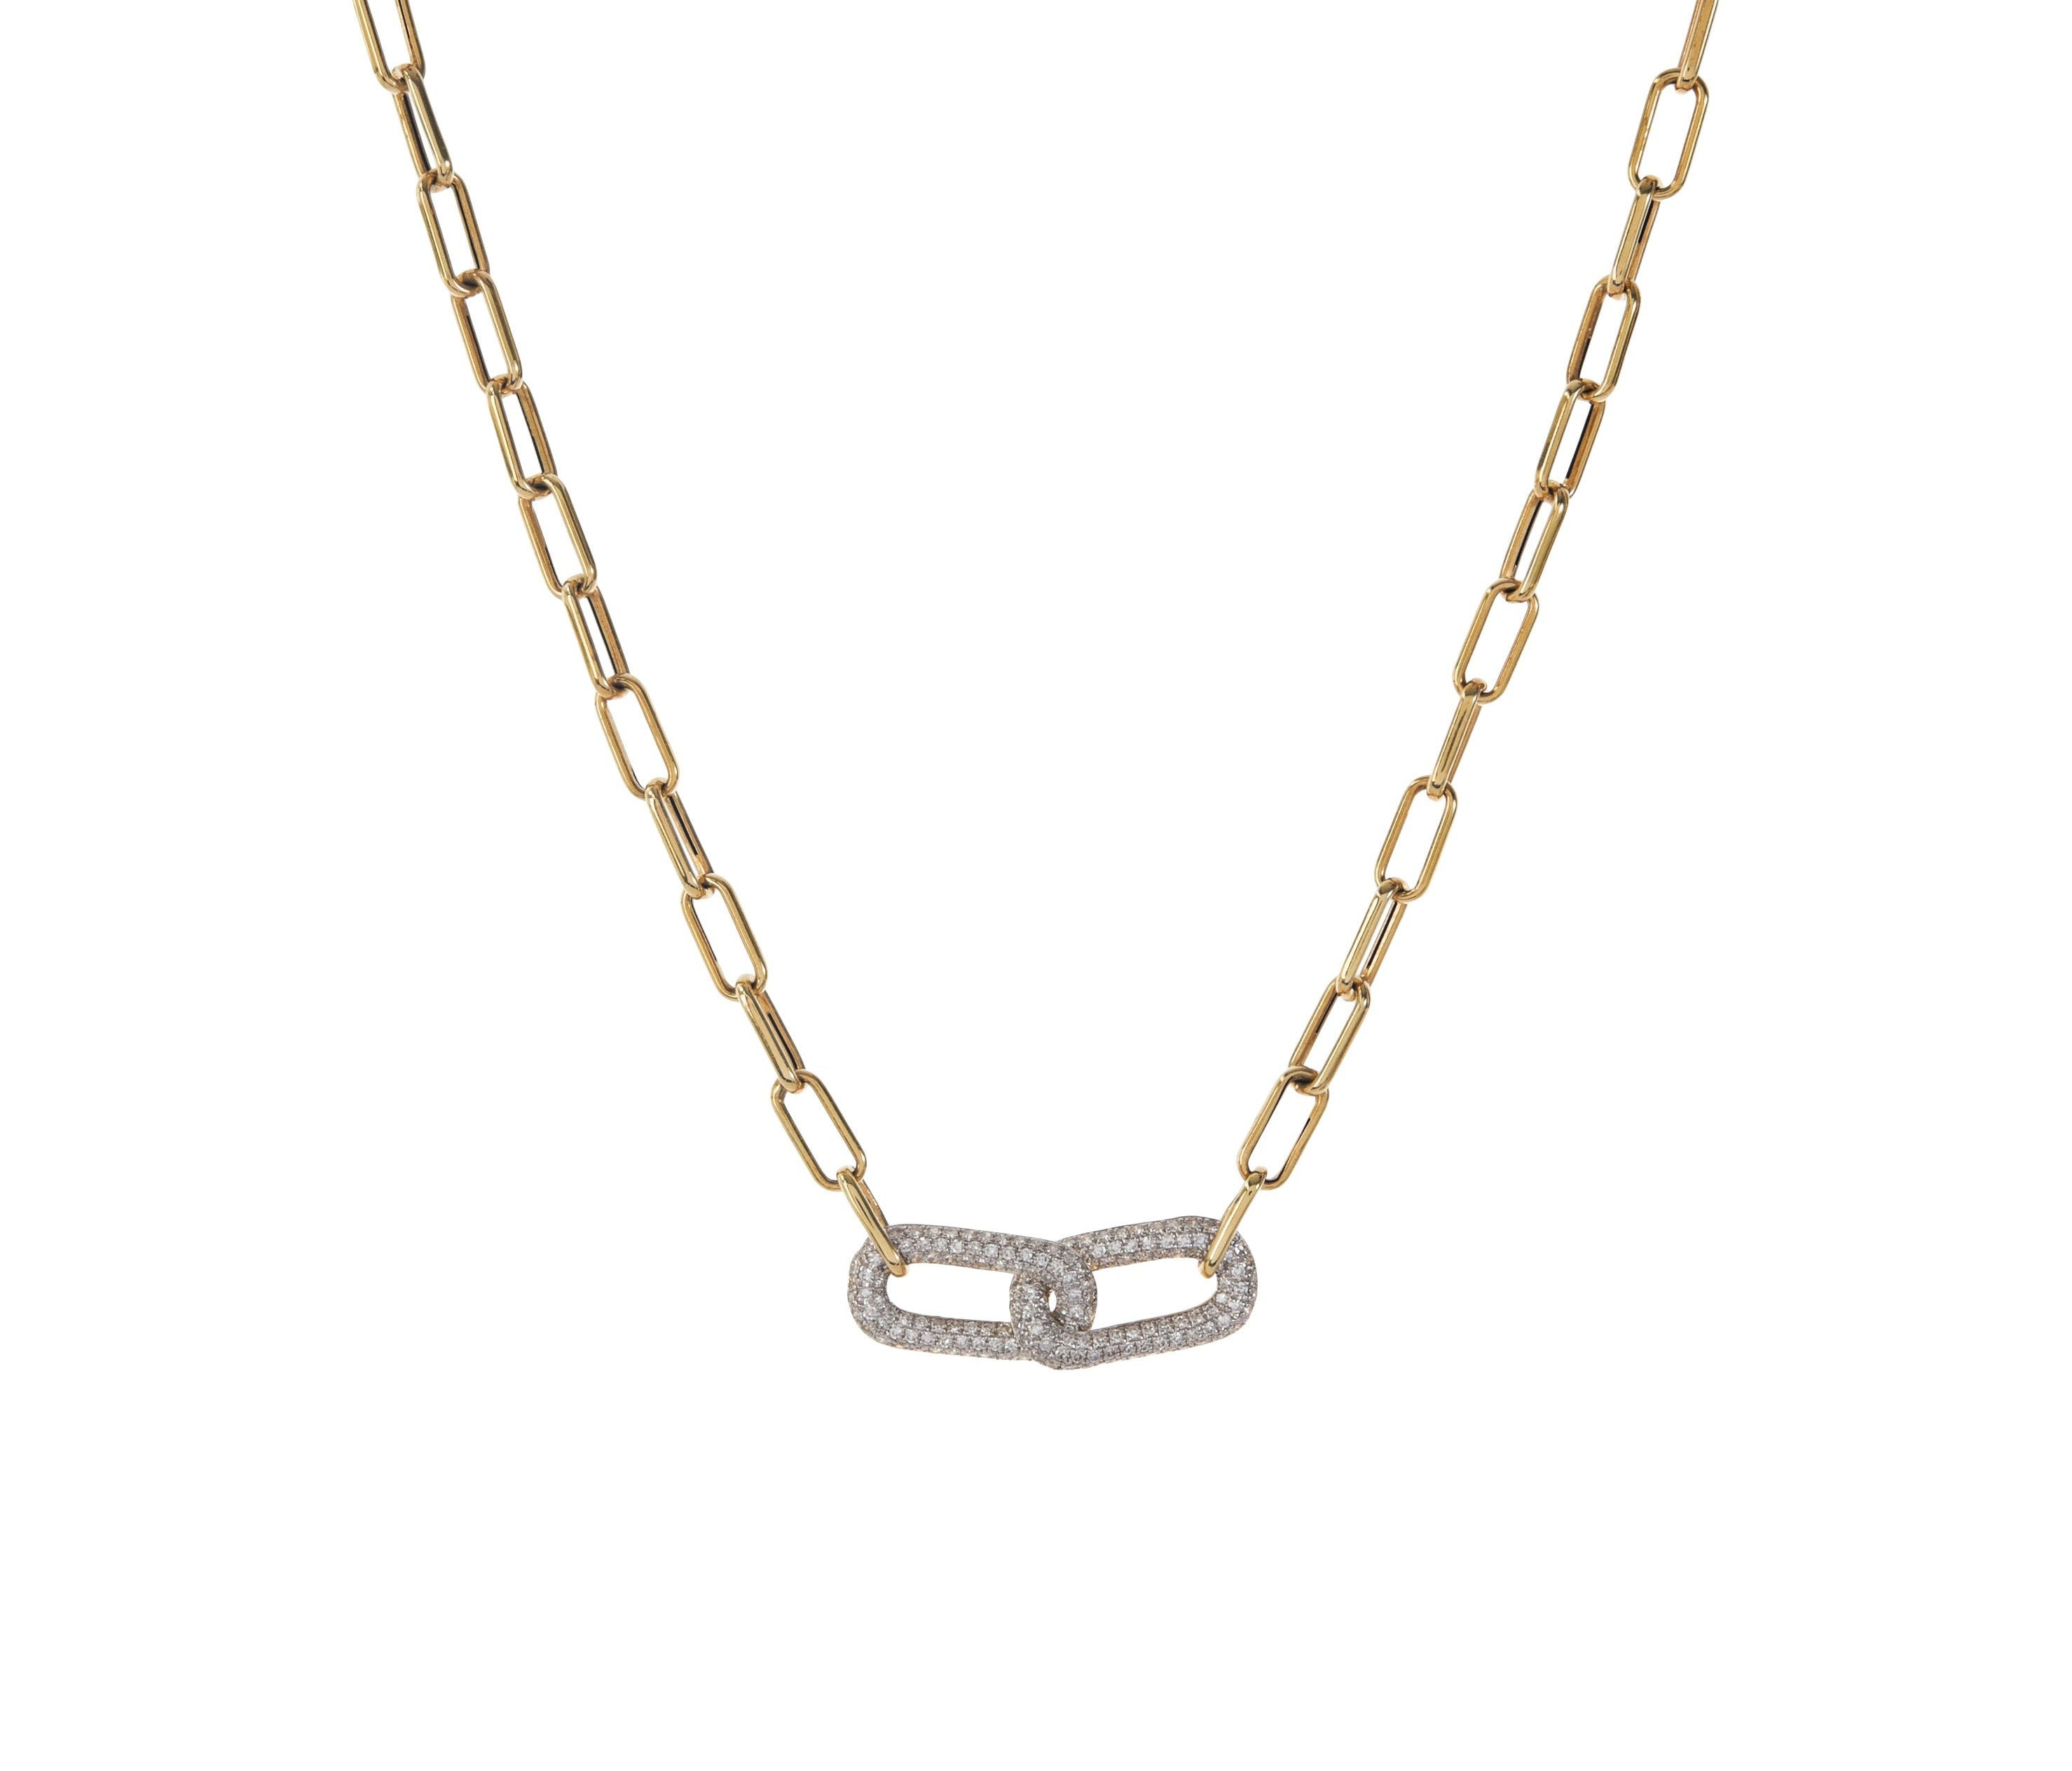 Open Cable Chain with Pave Links Necklace